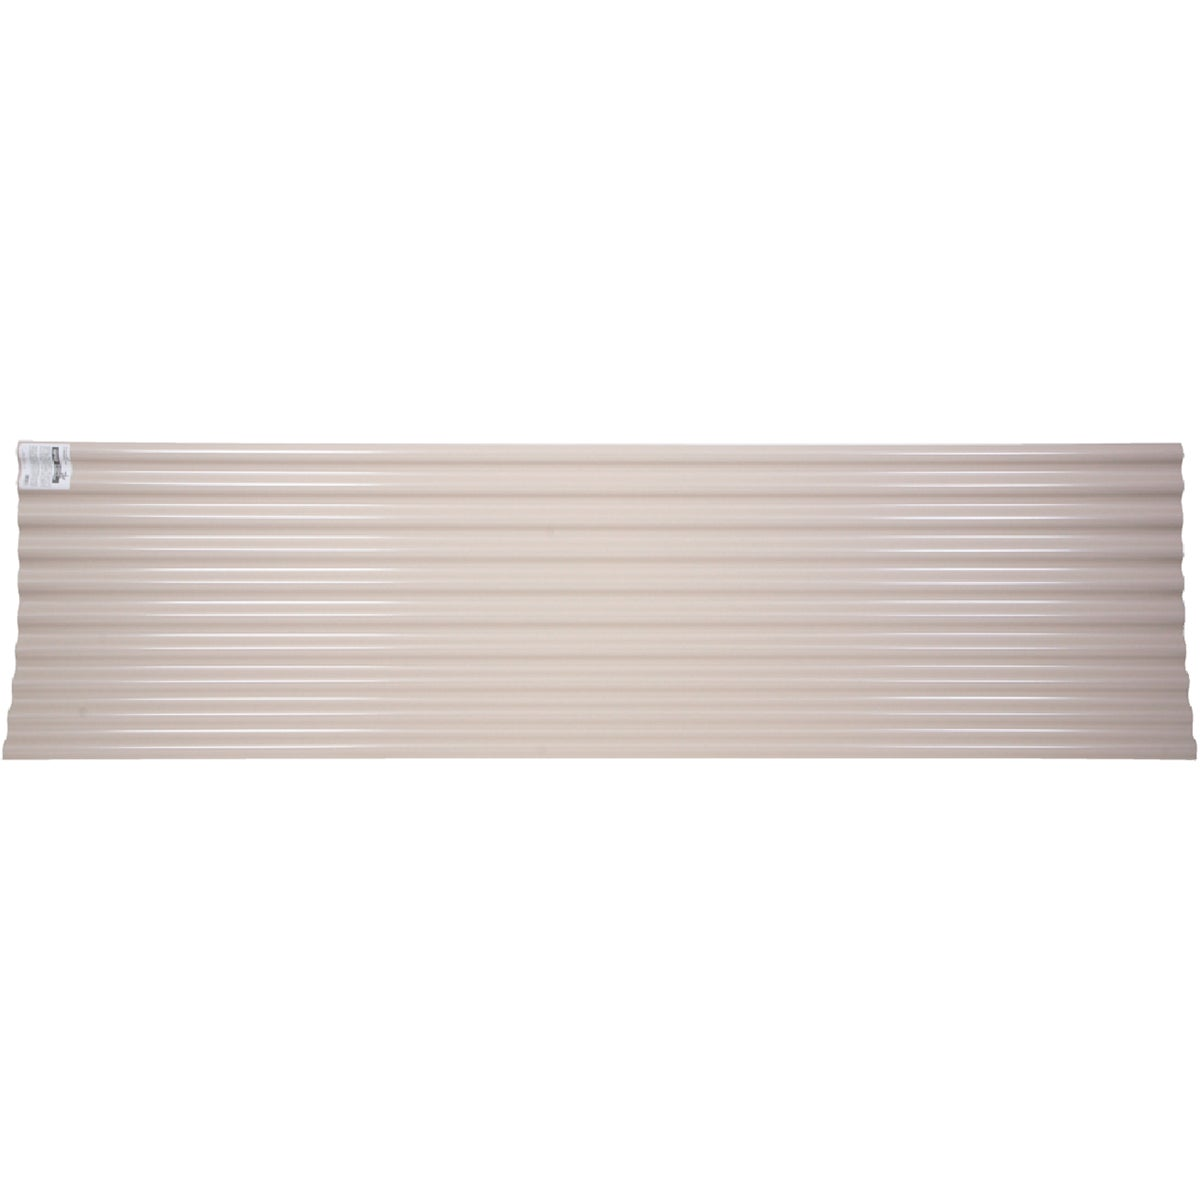 8' TAN CORGTD PVC PANEL - 120818 by Ofic North America